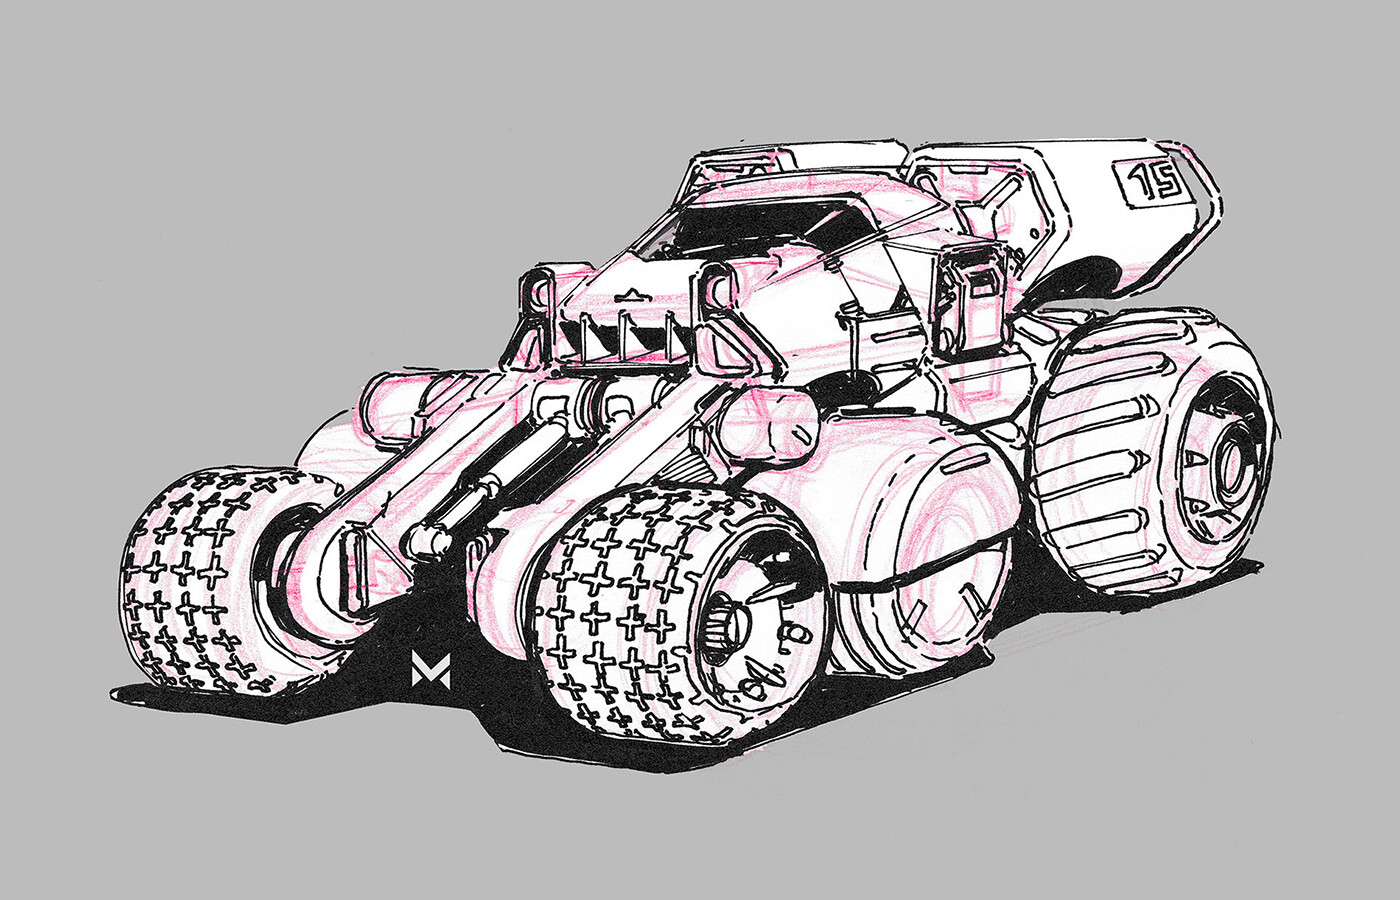 Offroad vehicle concept